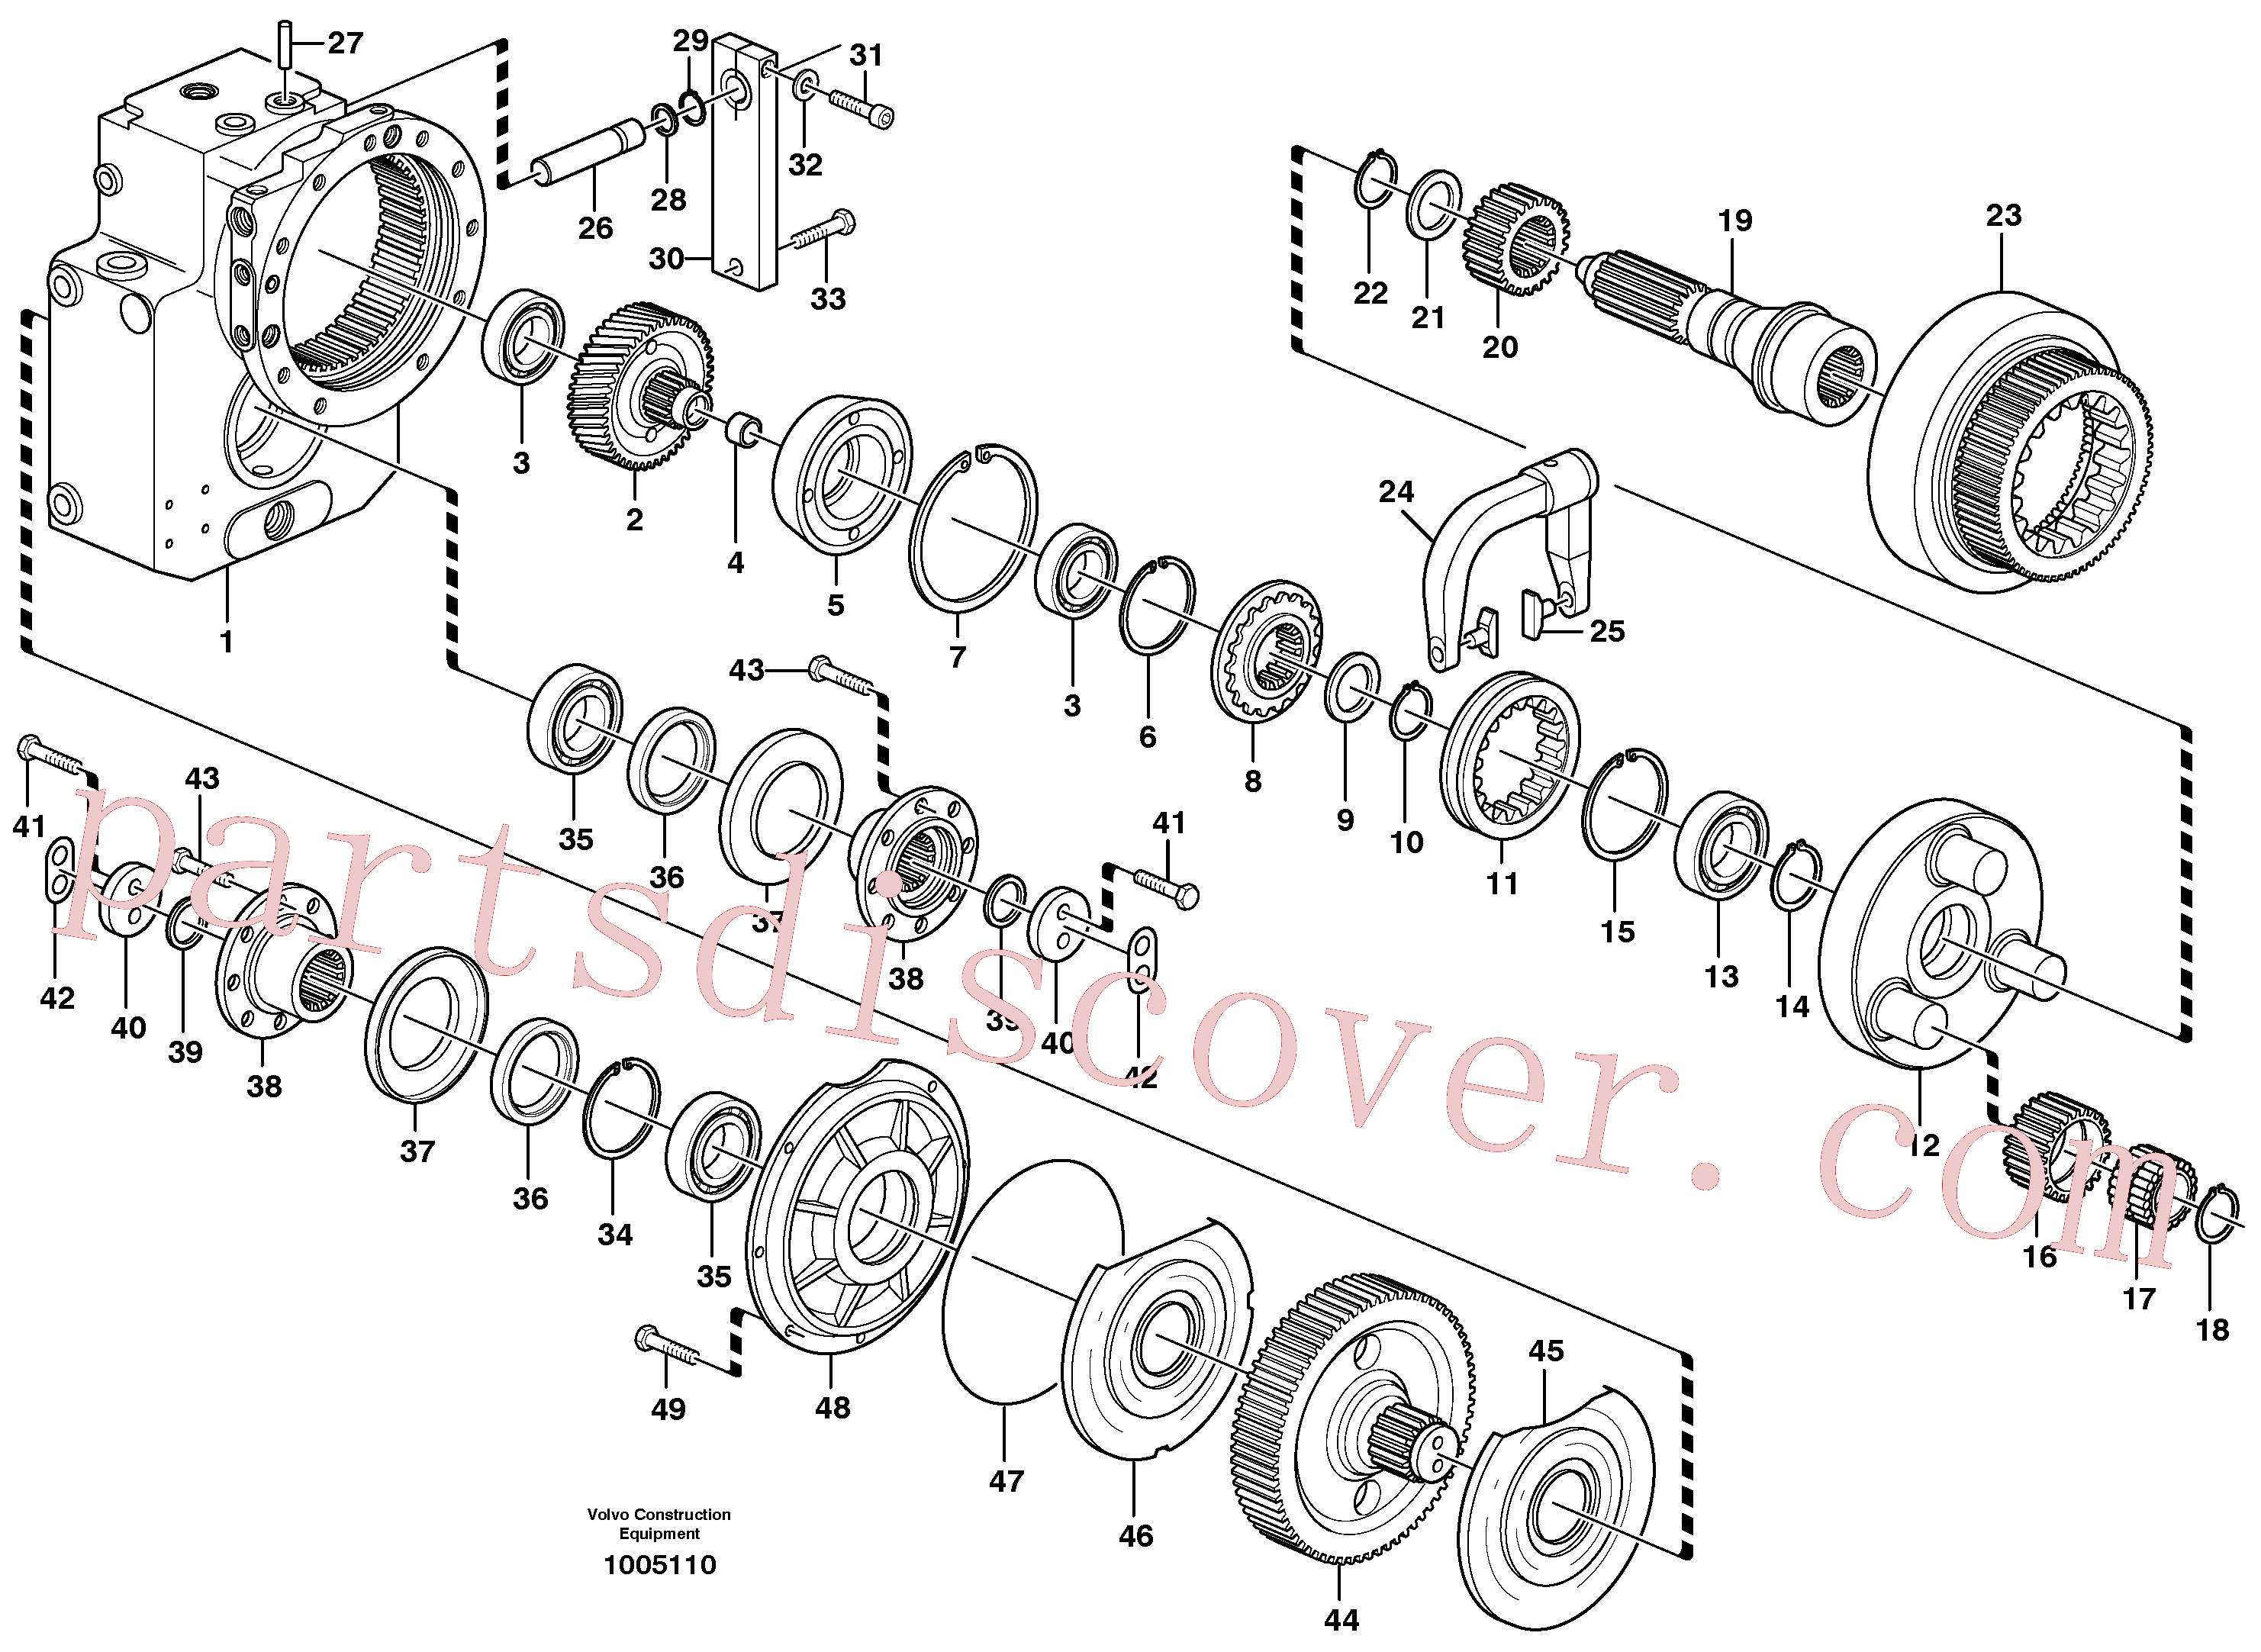 SA8220-02810 for Volvo Transfer case, gears and shafts(1005110 assembly)